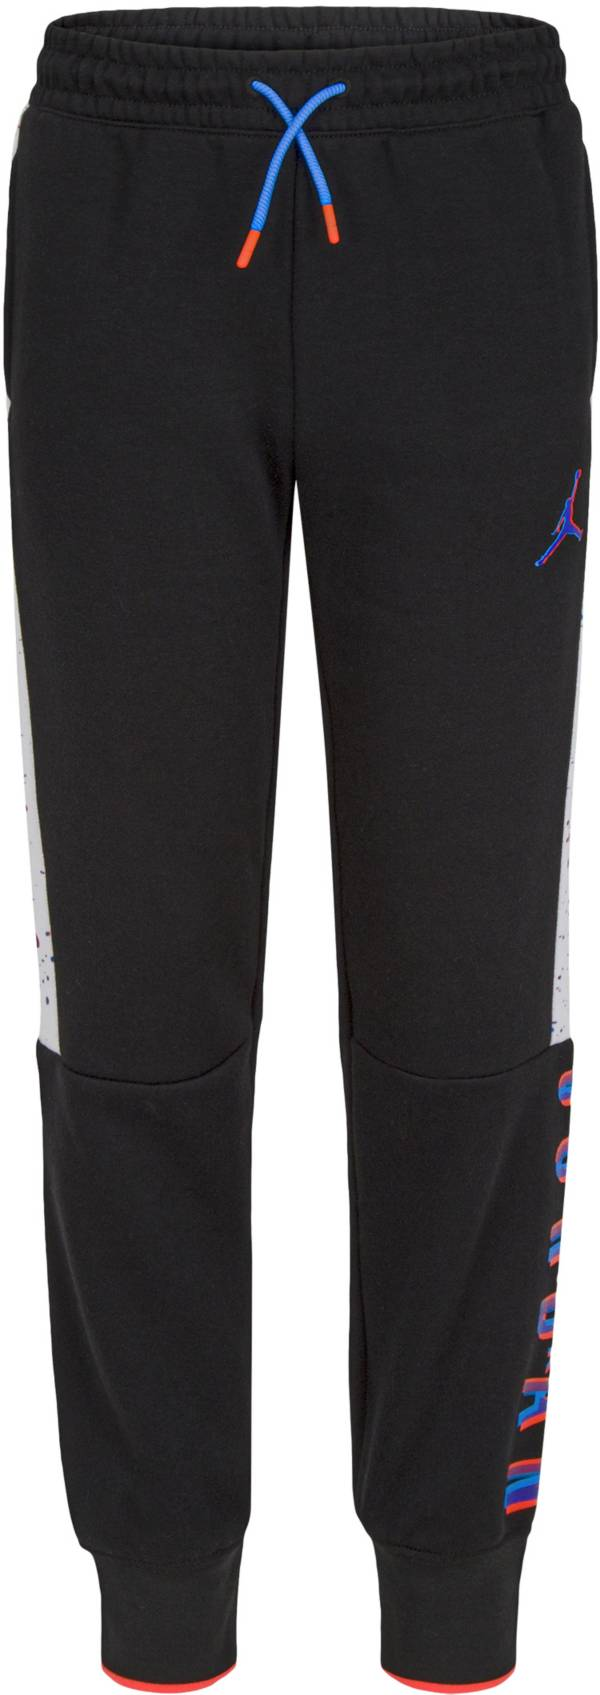 Jordan Boys' Space Glitch Fleece Pants product image